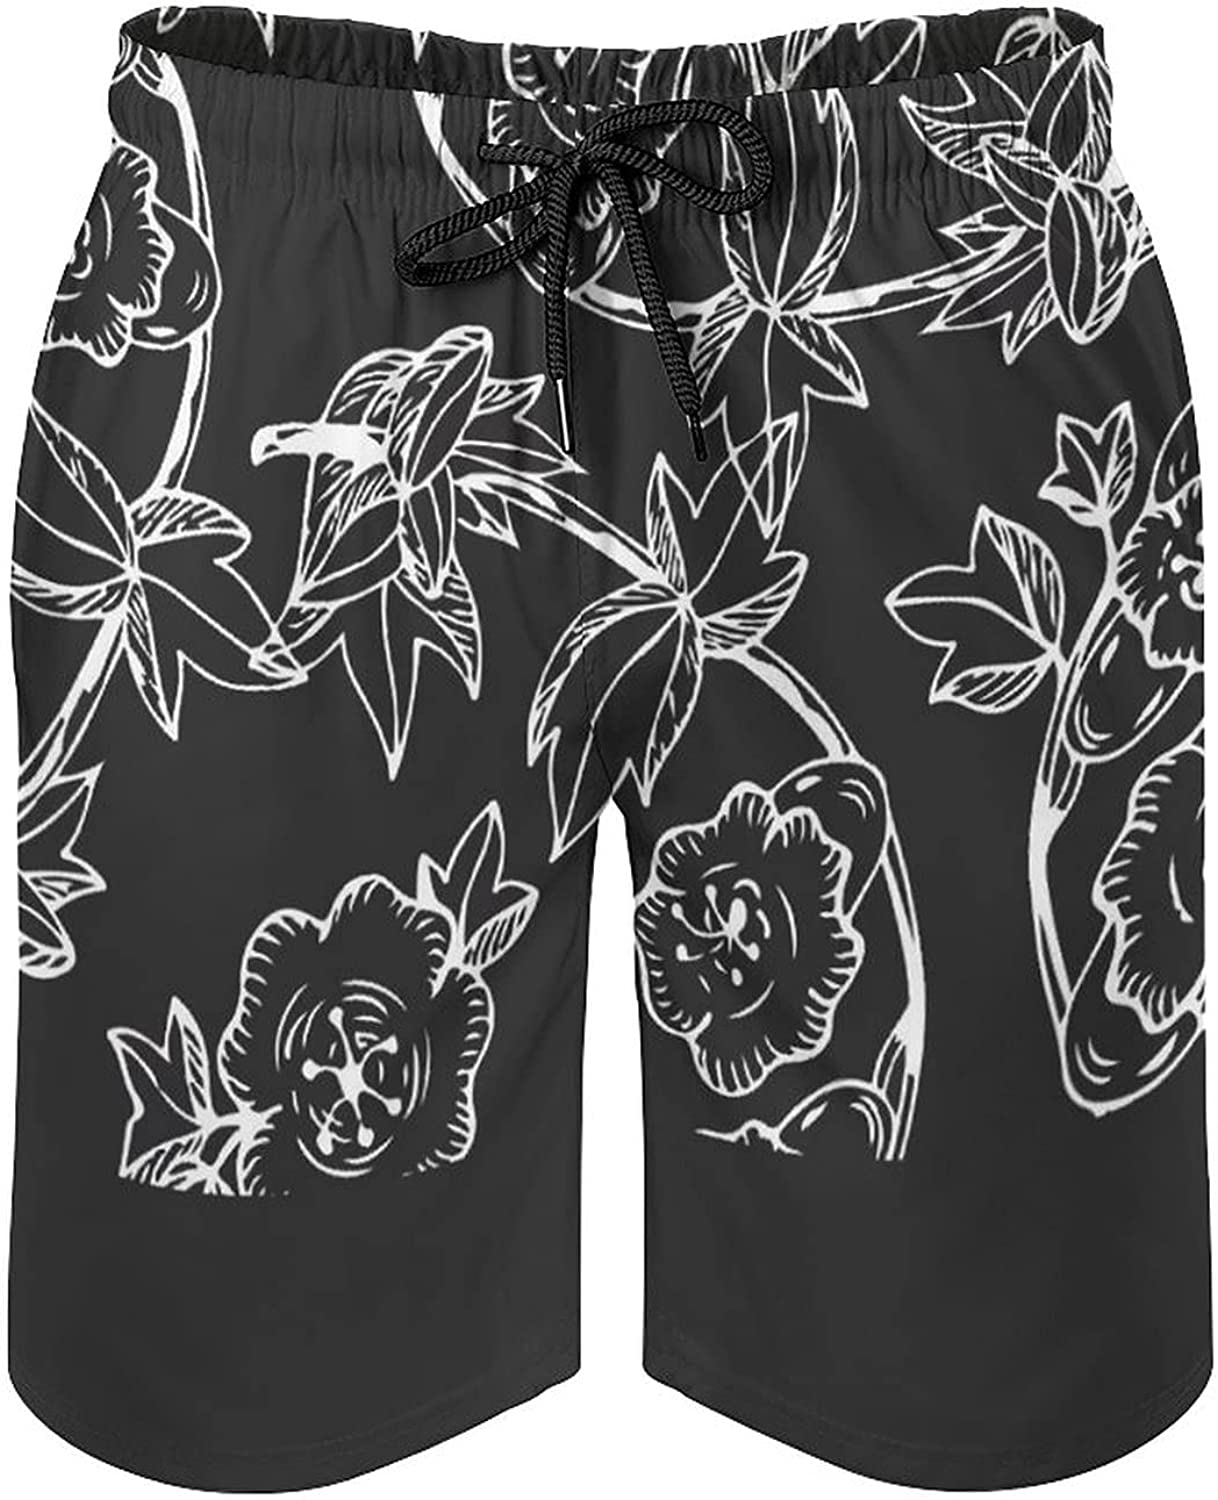 by Unbranded Men's Summer Seaside Board Shorts with Pockets Black and White Pattern